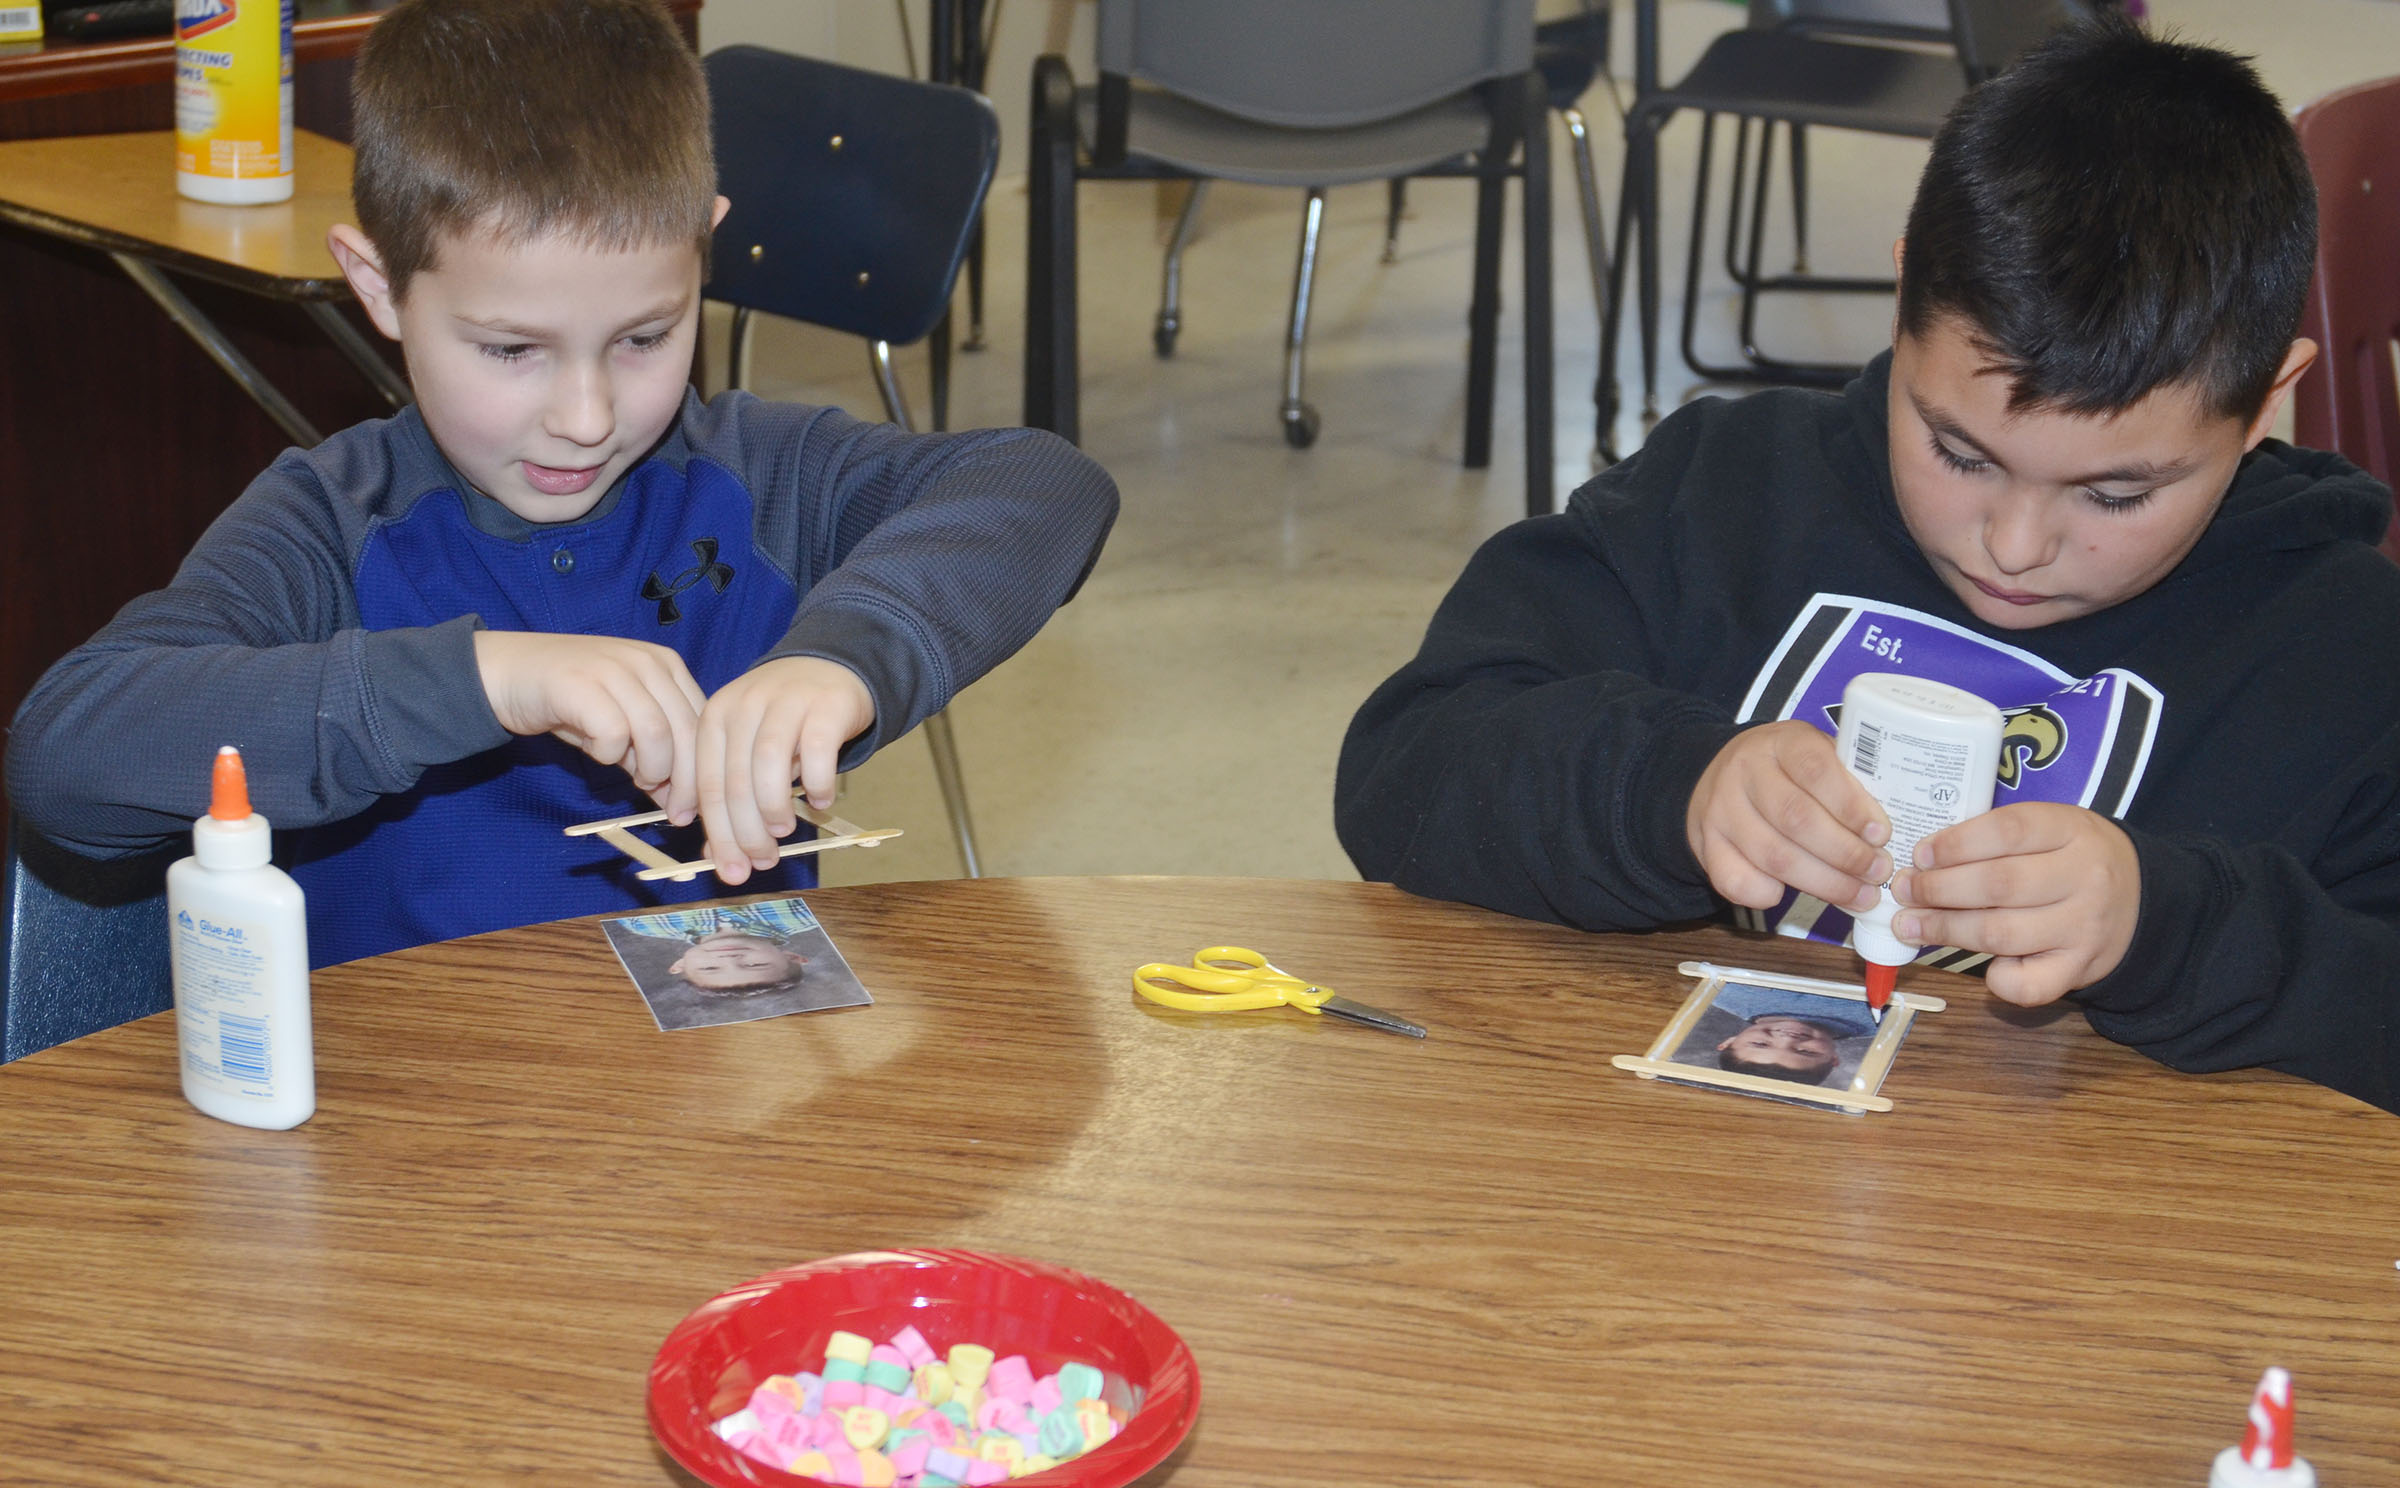 CES third-graders Grayson Dooley, at left, and Brayden Paiz glue their picture frames together.